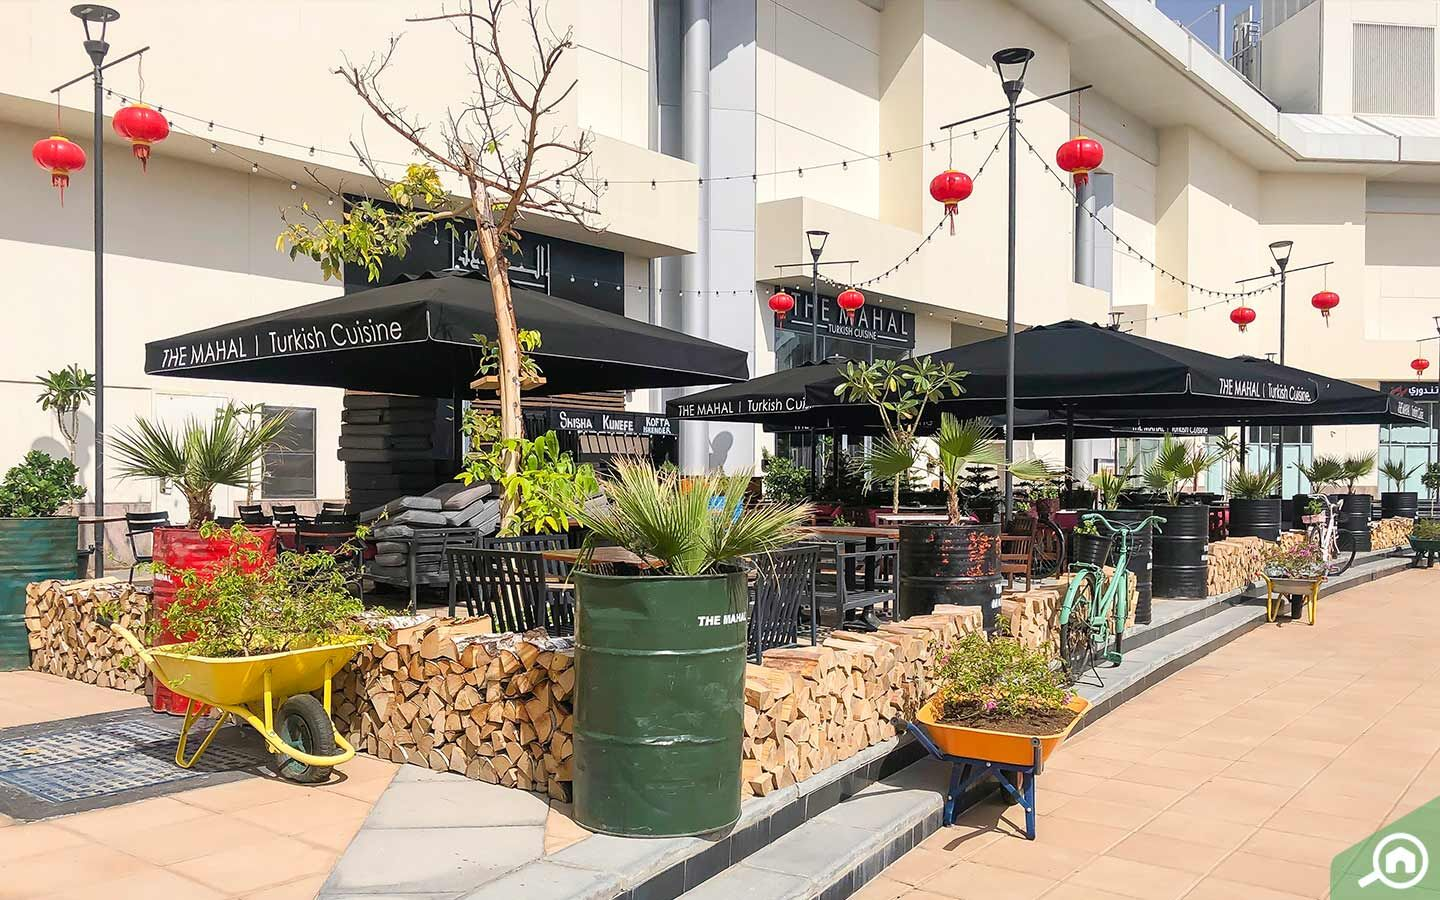 Outdoor seating of Mahal Turkish Cuisine at Dragon mart dubai